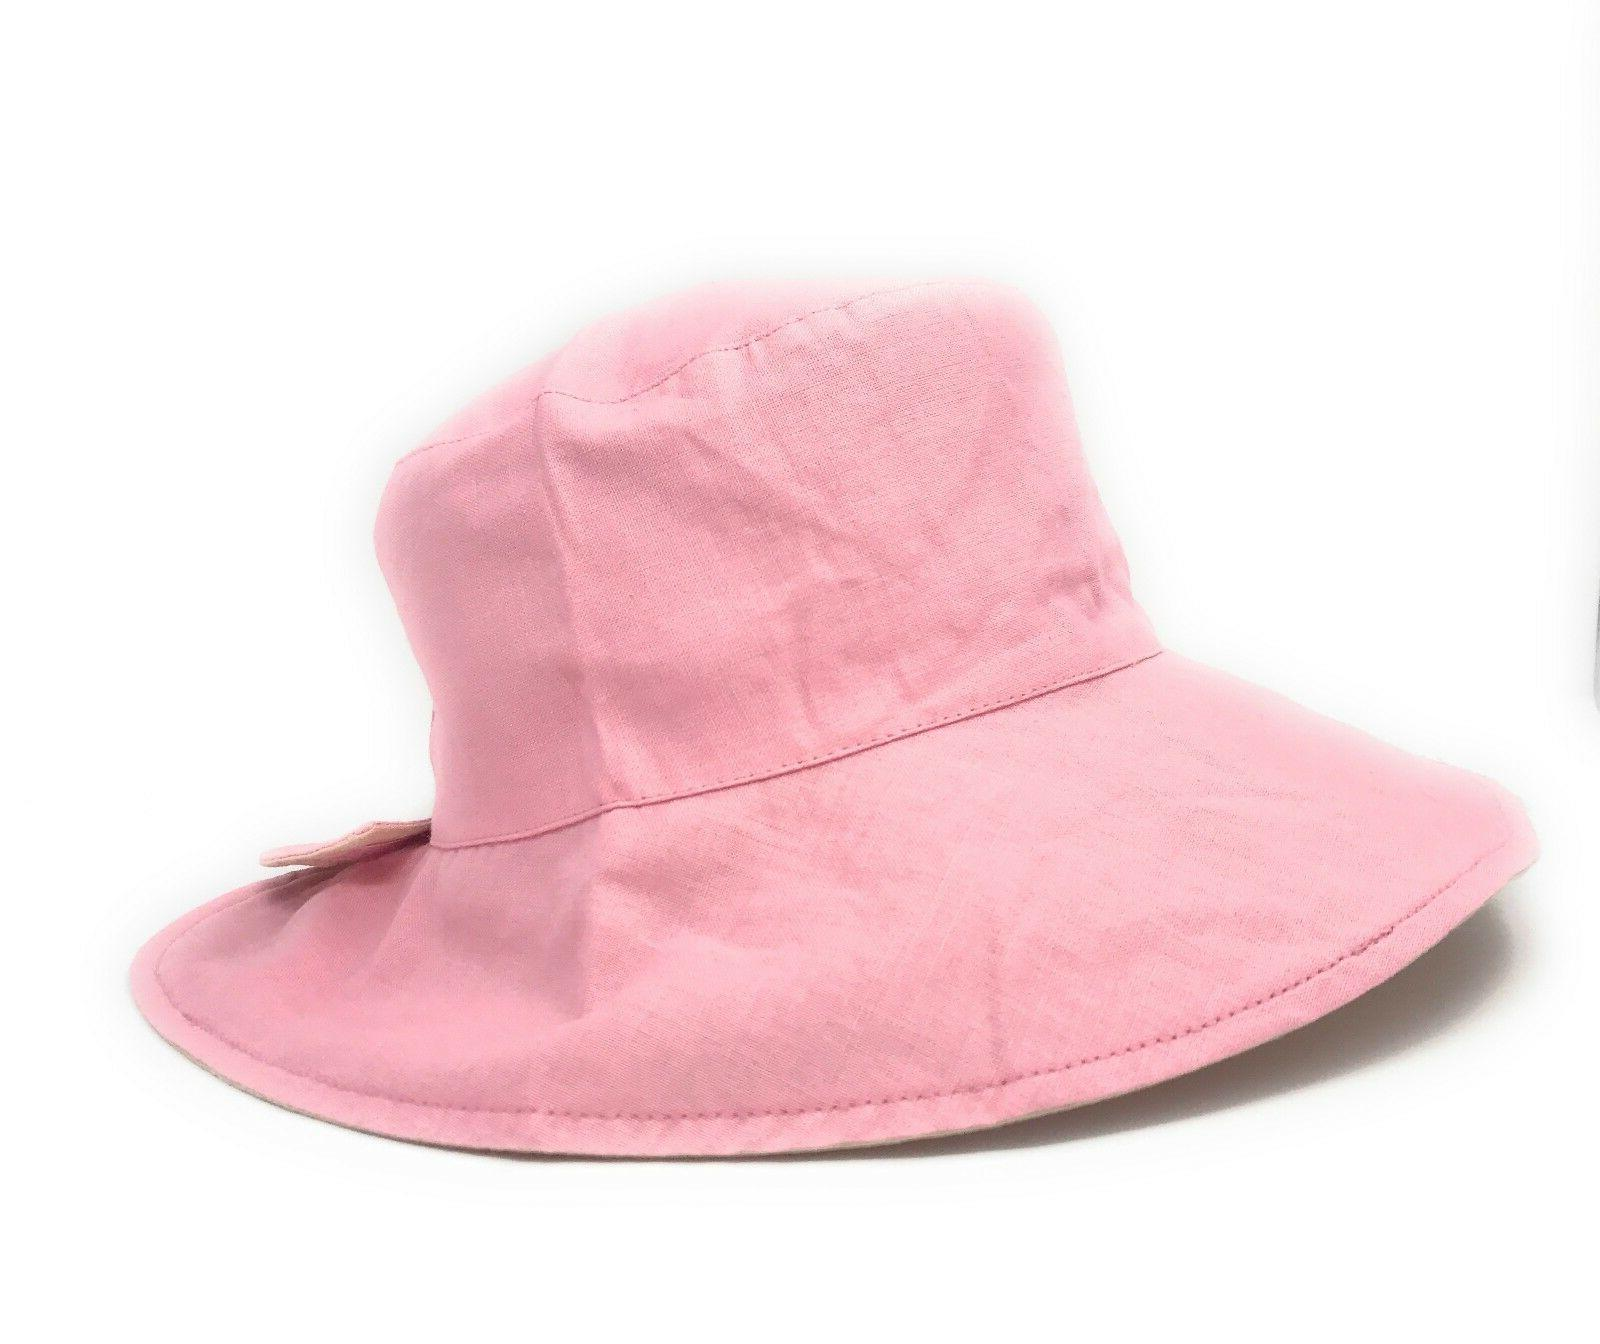 Cotton Ponytail Bucket Hats Reversible Summer Beach